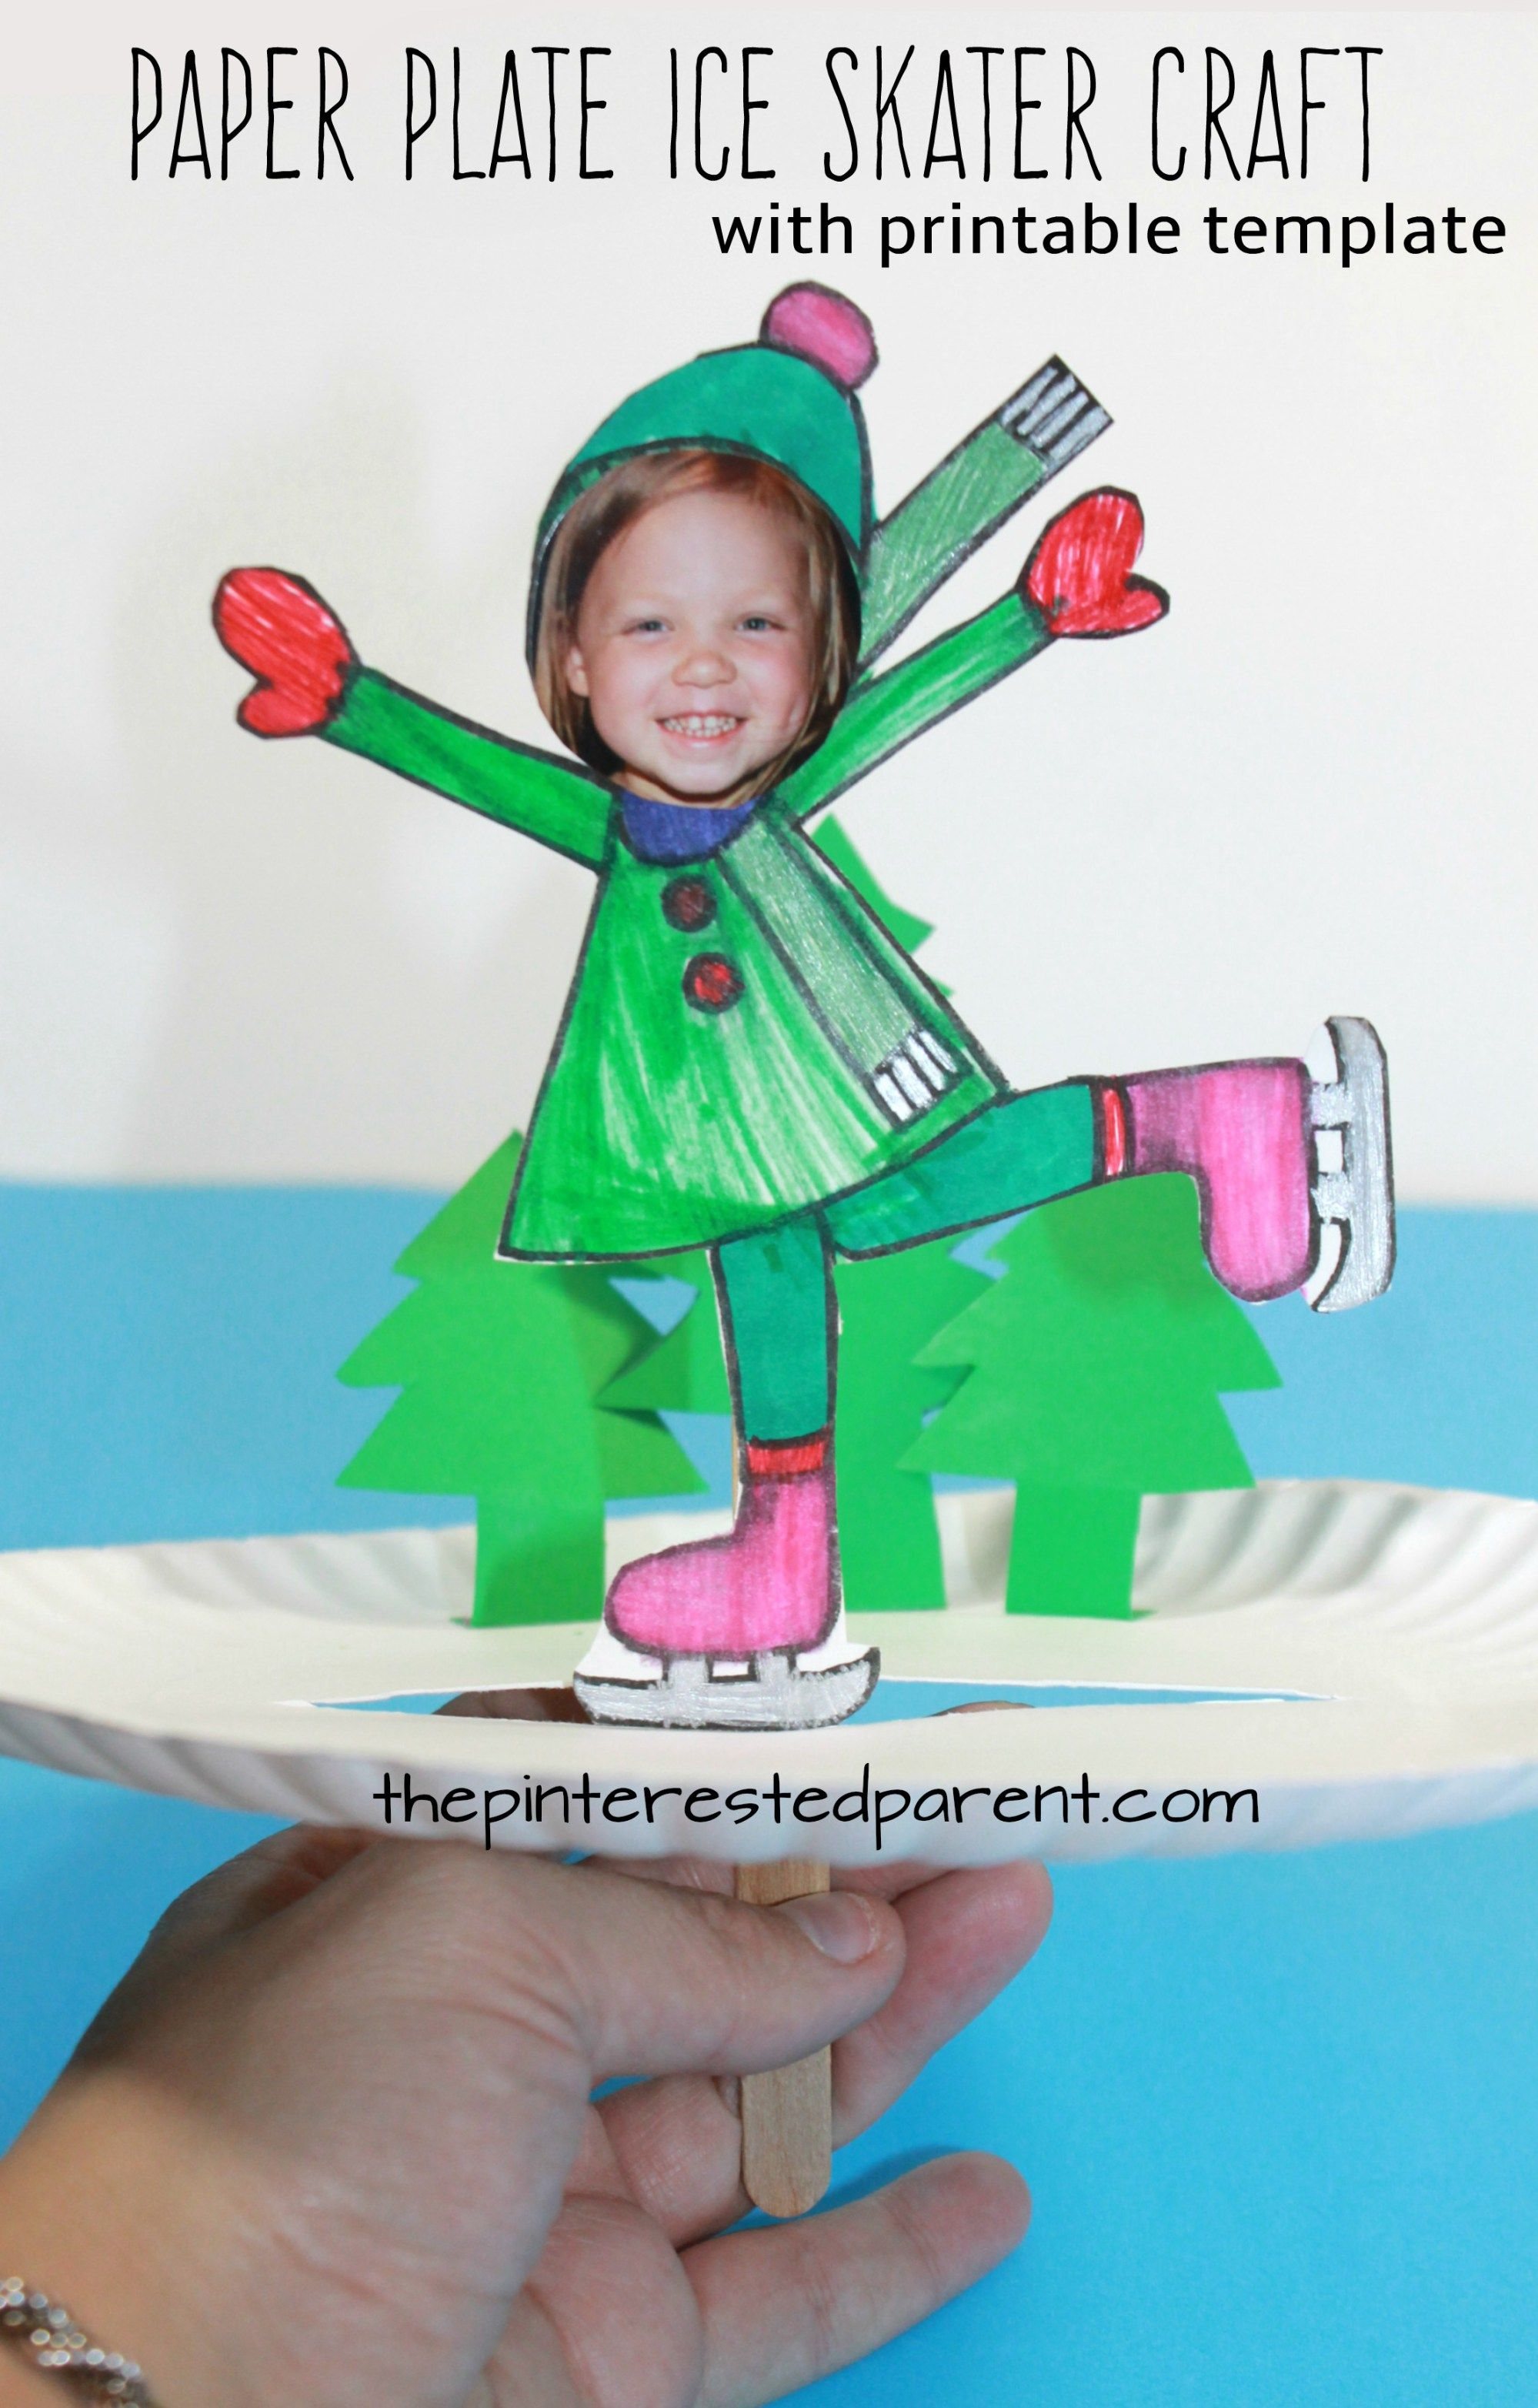 Paper Plate Ice Skate Craft – The Pinterested Parent | Winter crafts for  kids, Christmas arts and crafts, Winter sports crafts